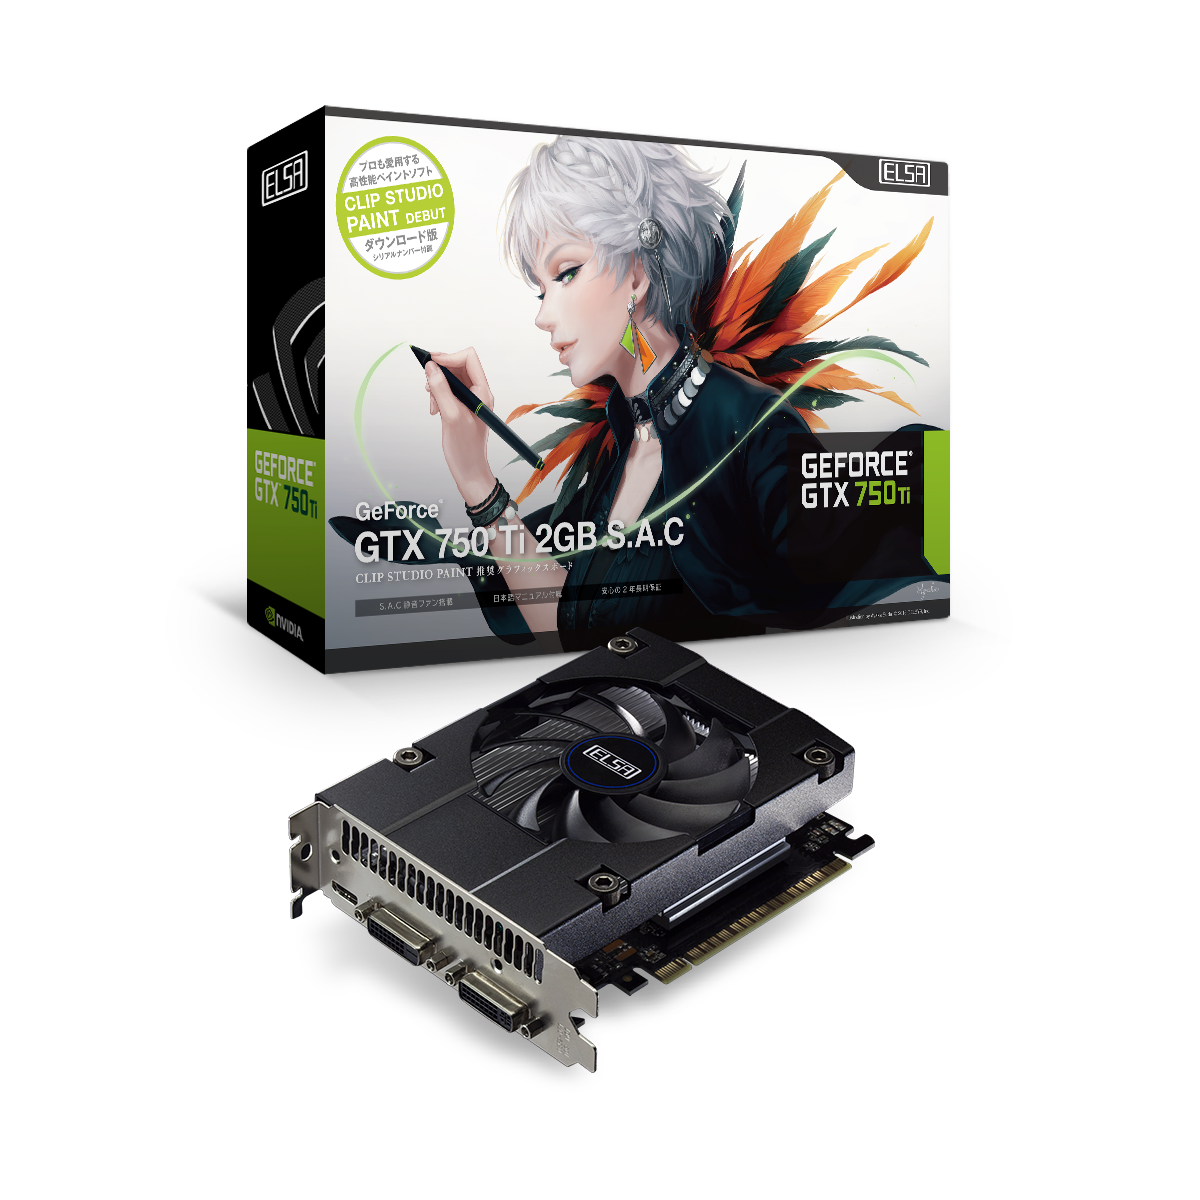 elsa_geforce_gtx_750_ti_2gb_sac_clip_box_card